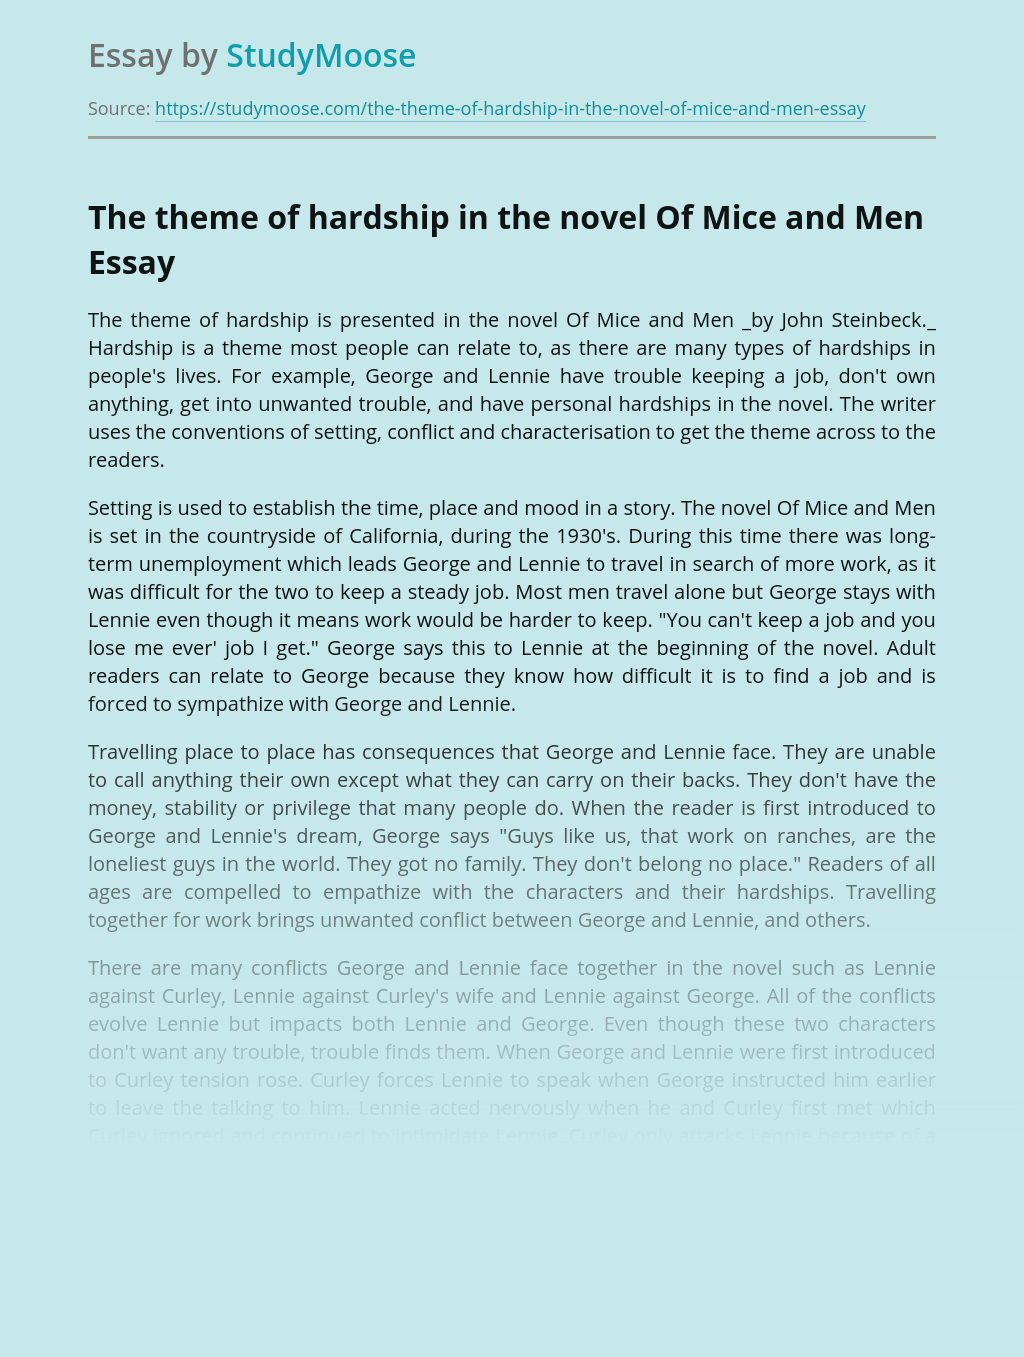 The theme of hardship in the novel Of Mice and Men